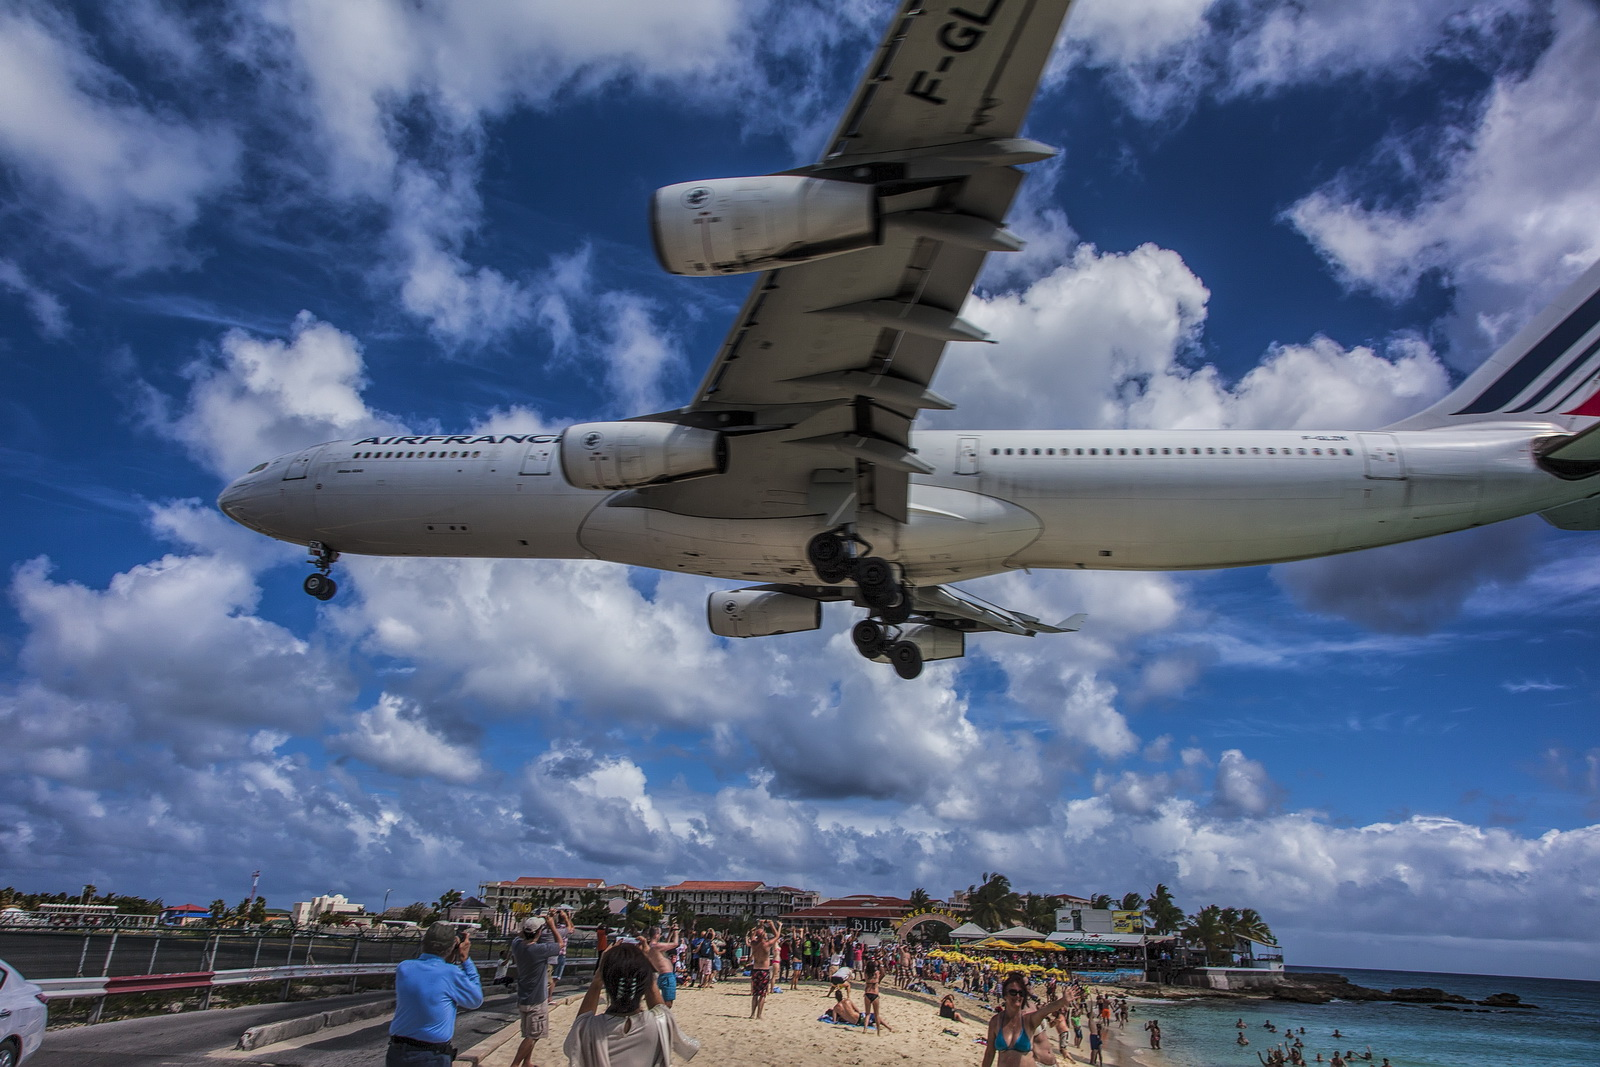 St. Maarten, May 15, 2014 –Maho Beach & The Greenhouse